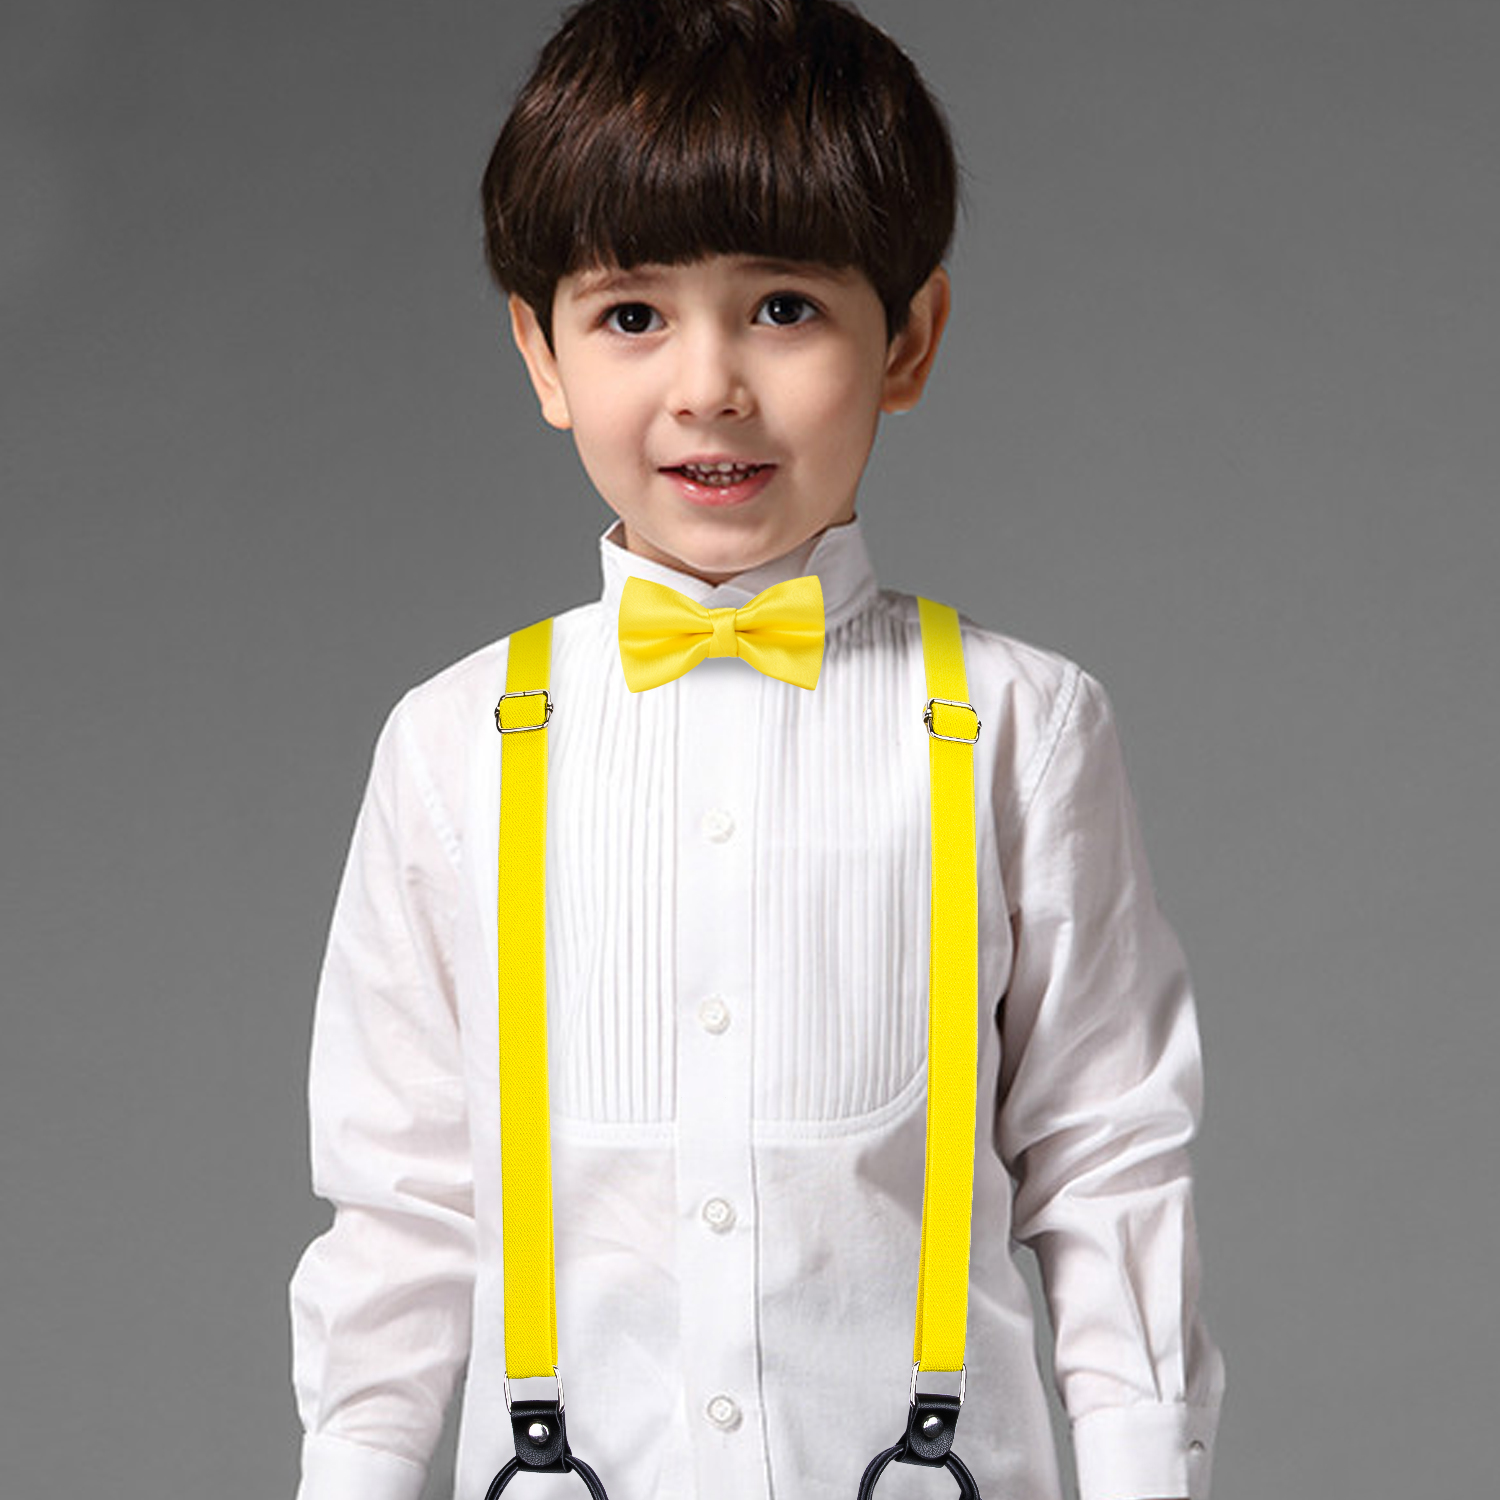 DiBanGu Bow Tie 6 Clips Suspenders For Boy Girls Real Leather Suspensorio 4-7 Years Bowtie Braces For Trousers Yellow BH-0020